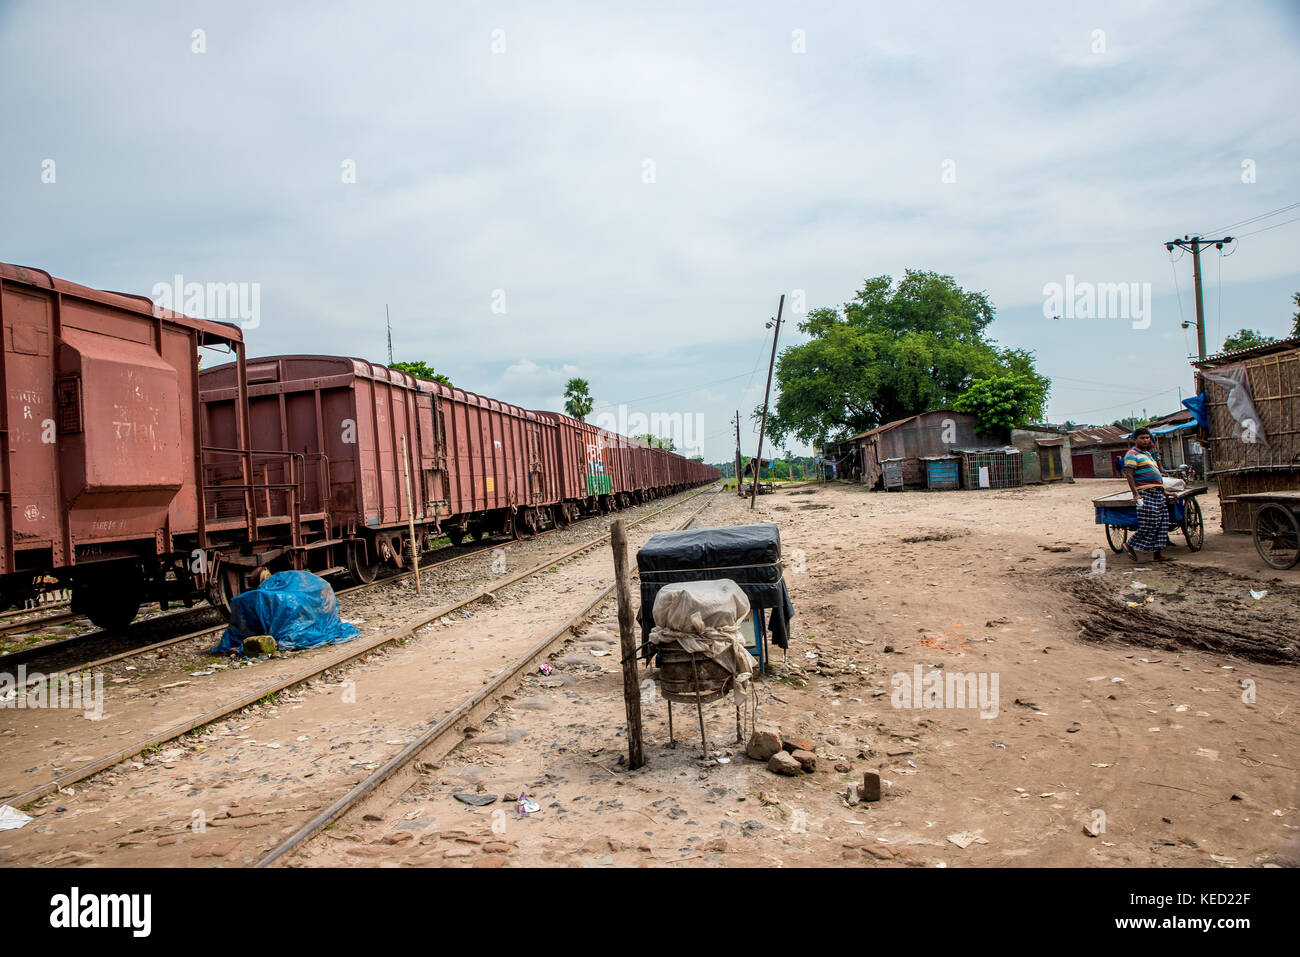 Rail station - Stock Image